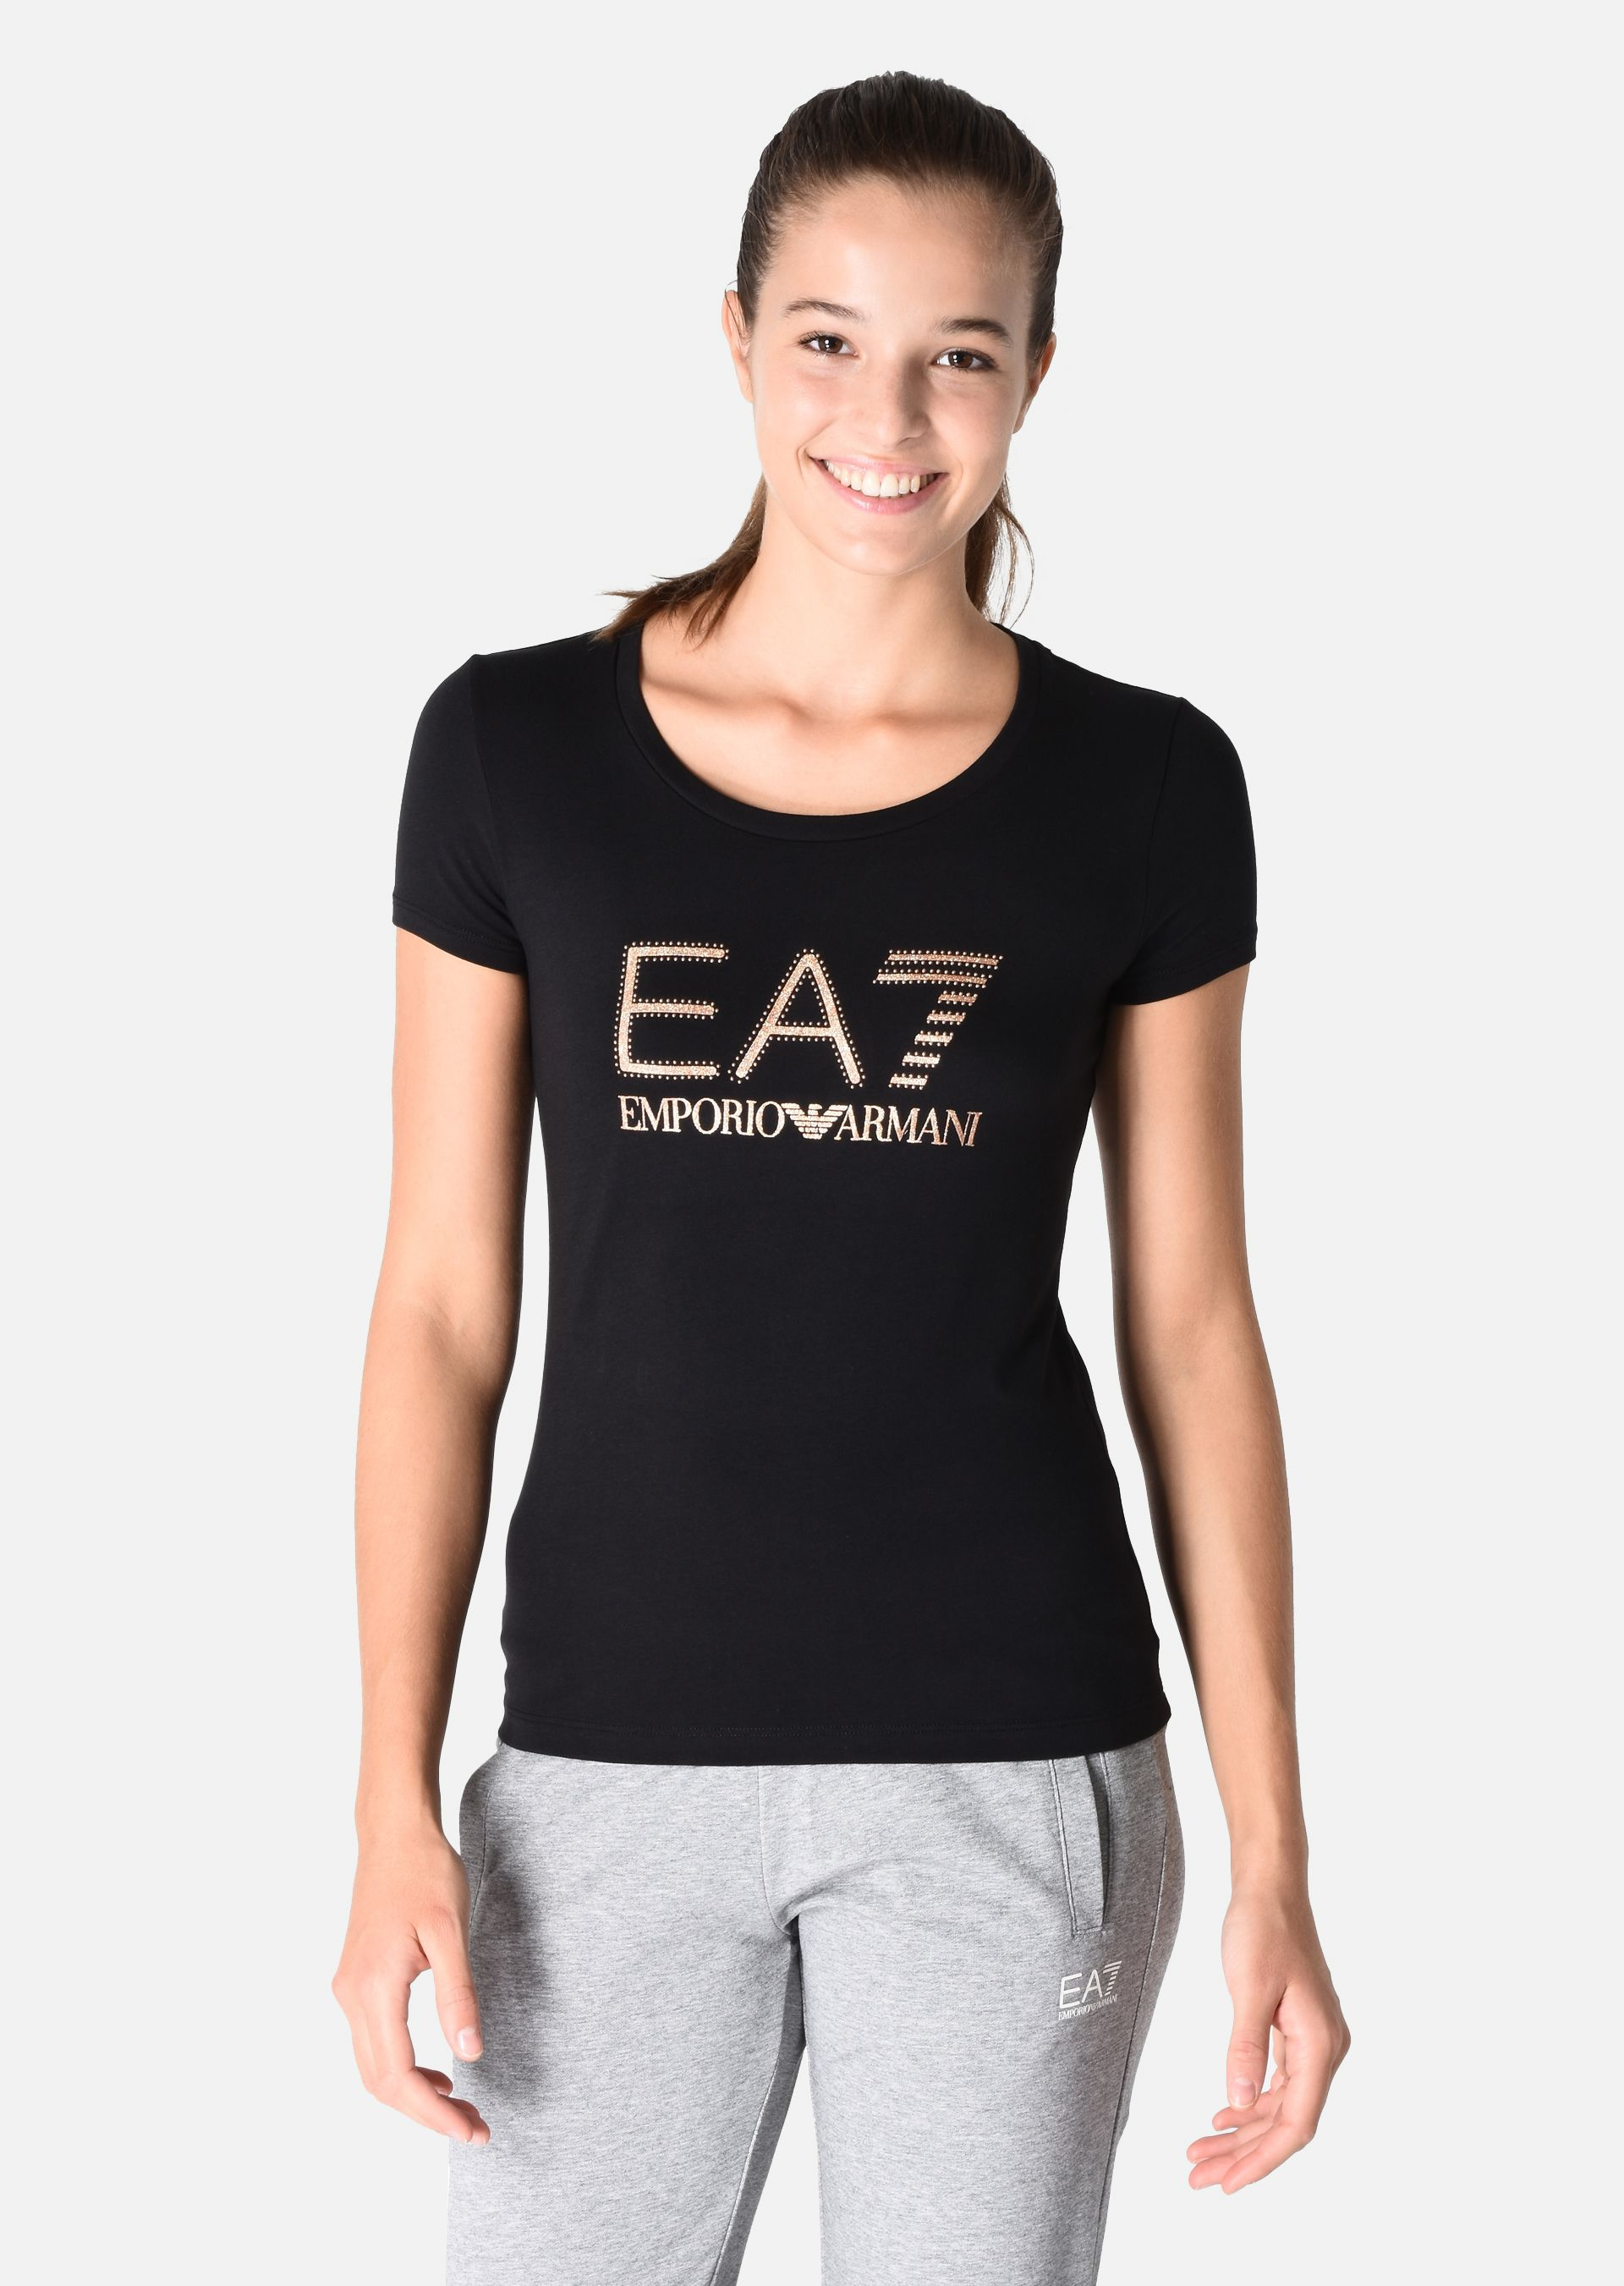 cheap ea7 t shirt womens